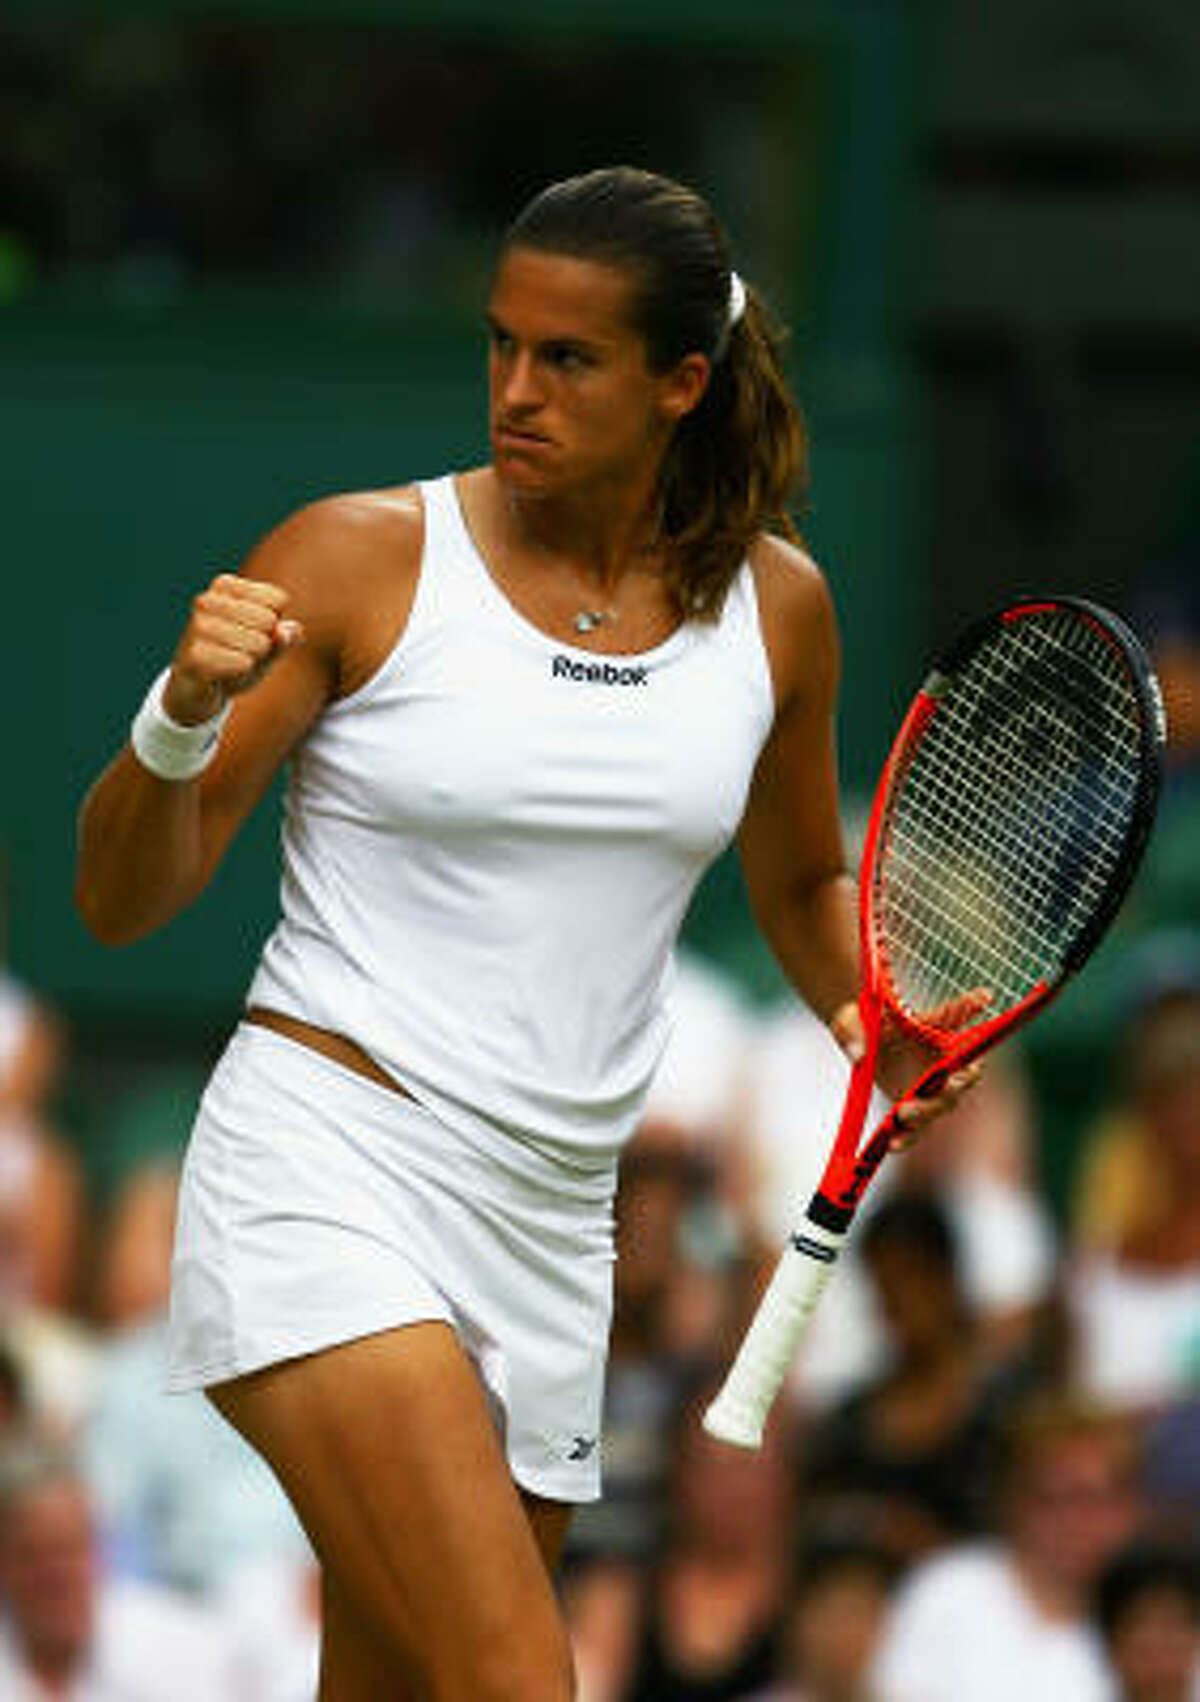 France's Amelie Mauresmo celebrates during her fourth-round match against Dinara Safina of Russia. Safina won the match 4-6, 6-3, 6-4.